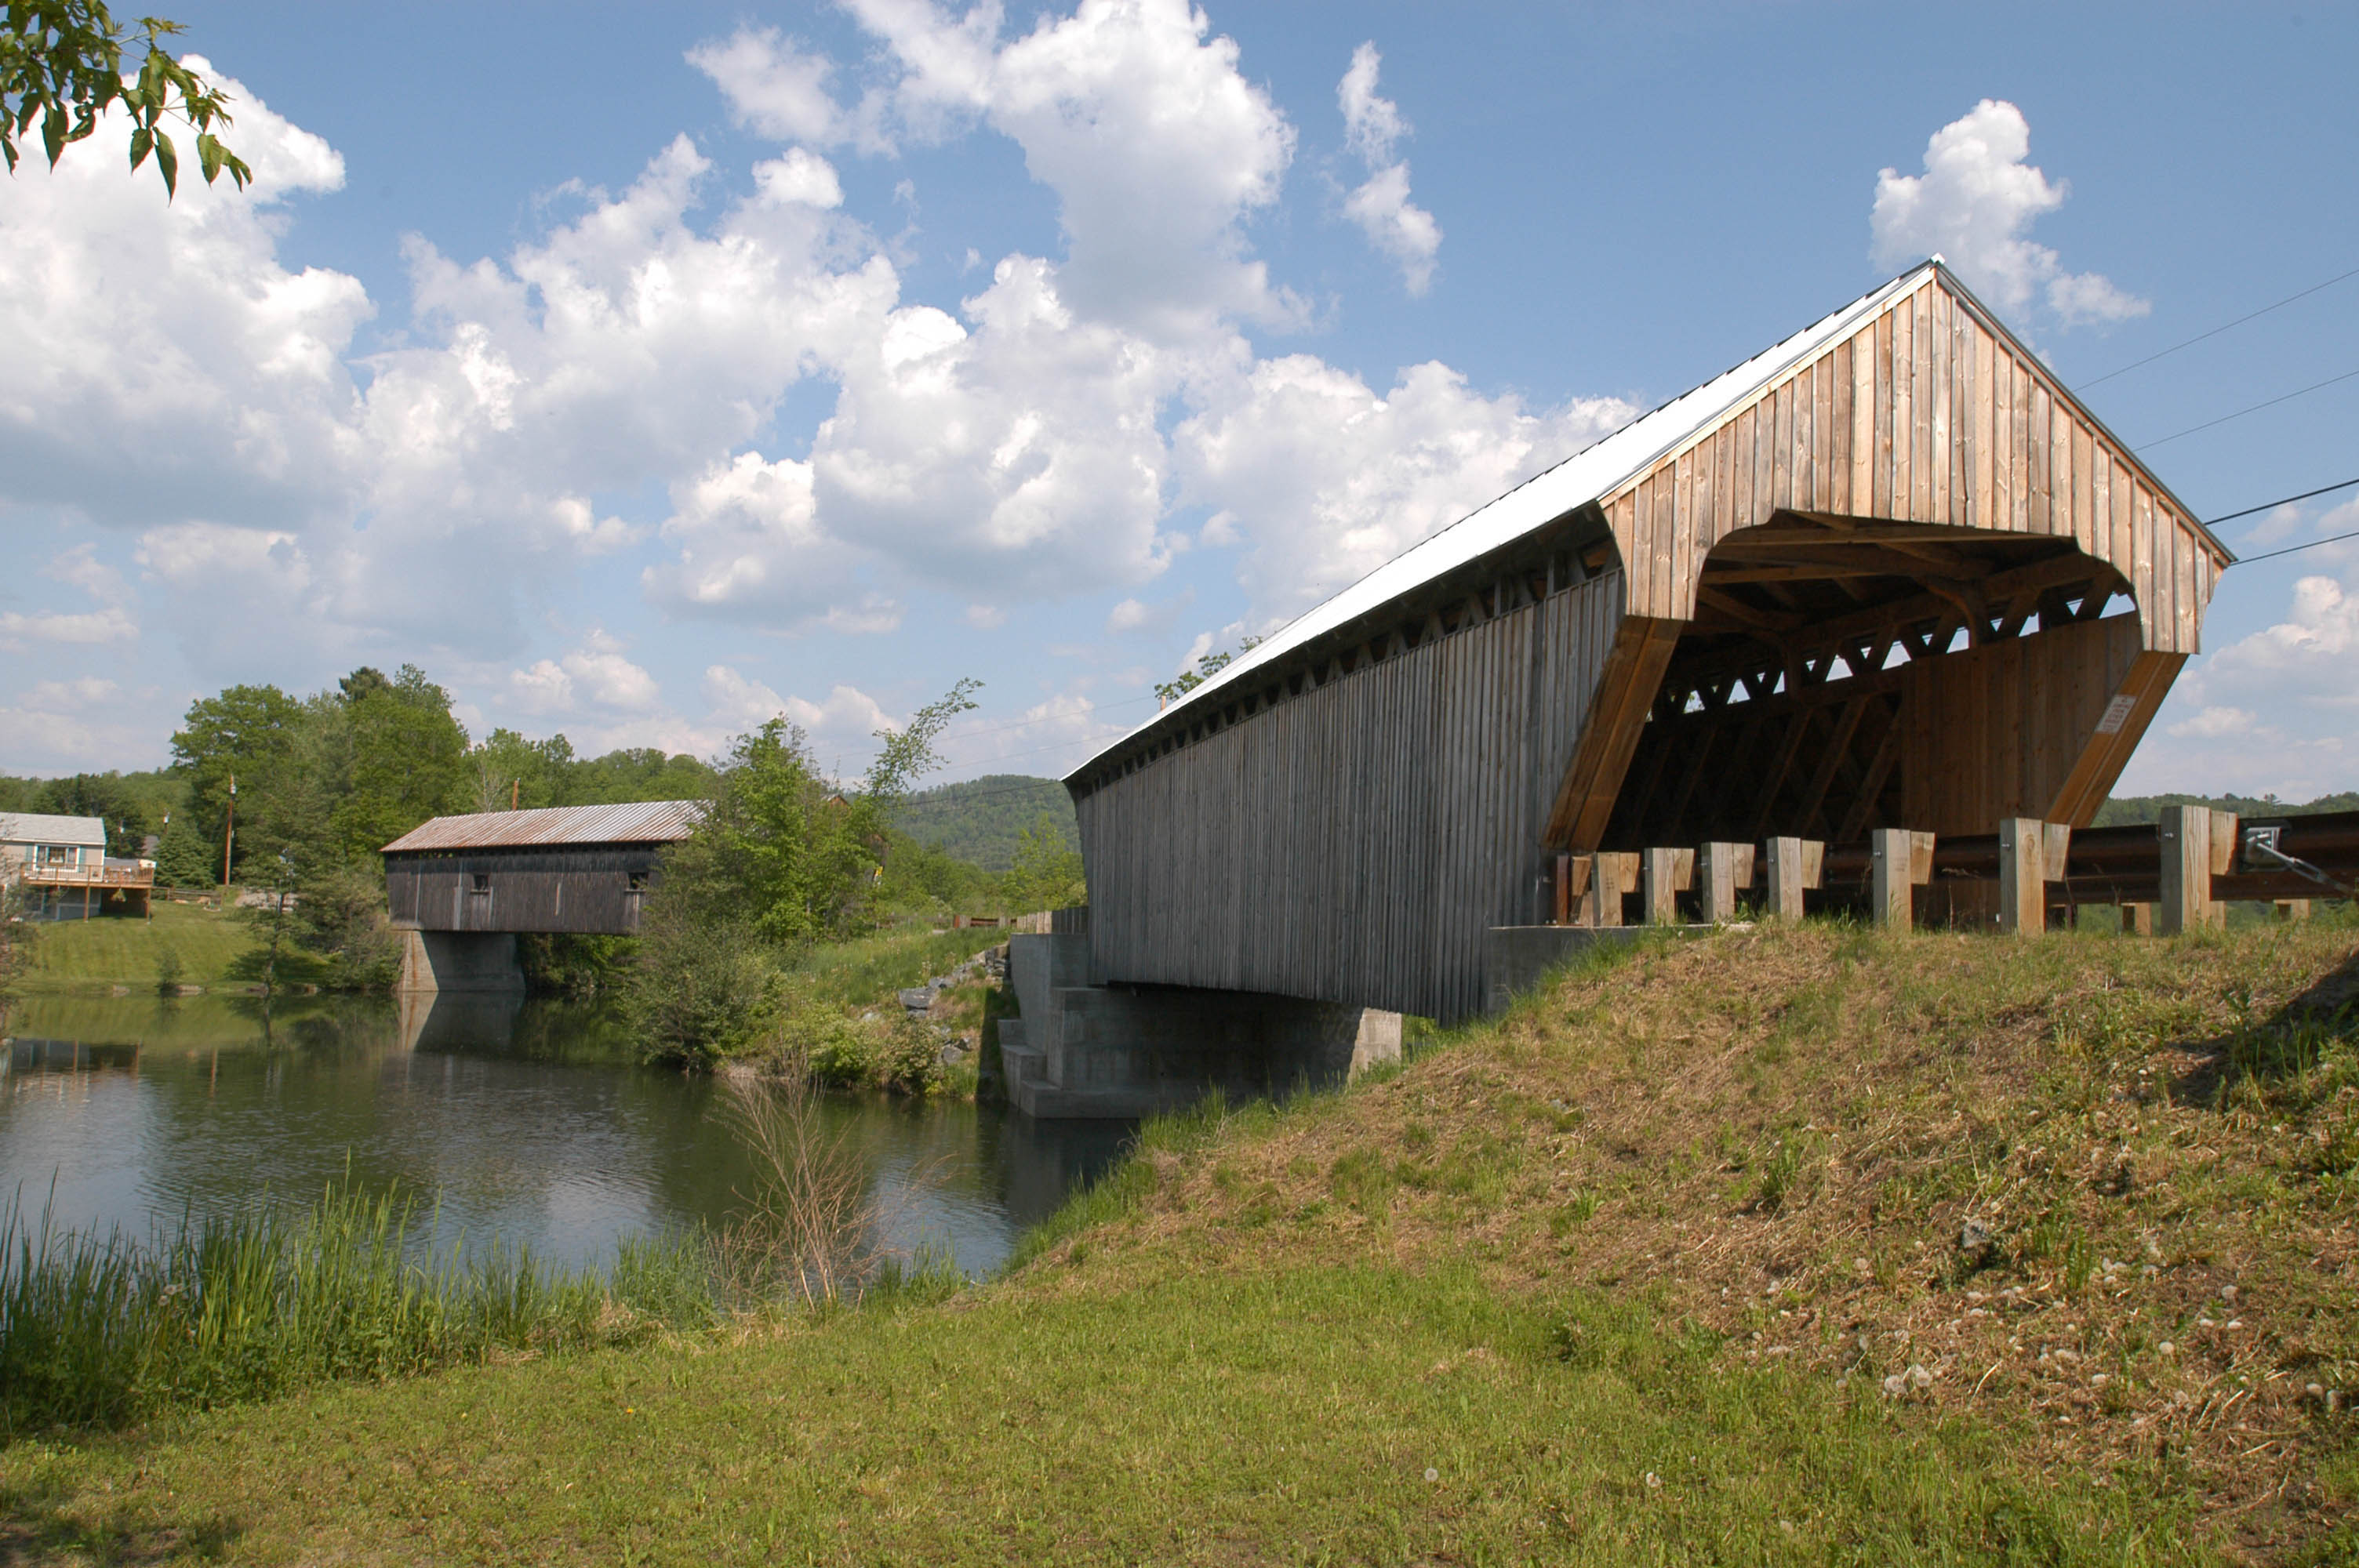 North Hartland VT Covered Bridge